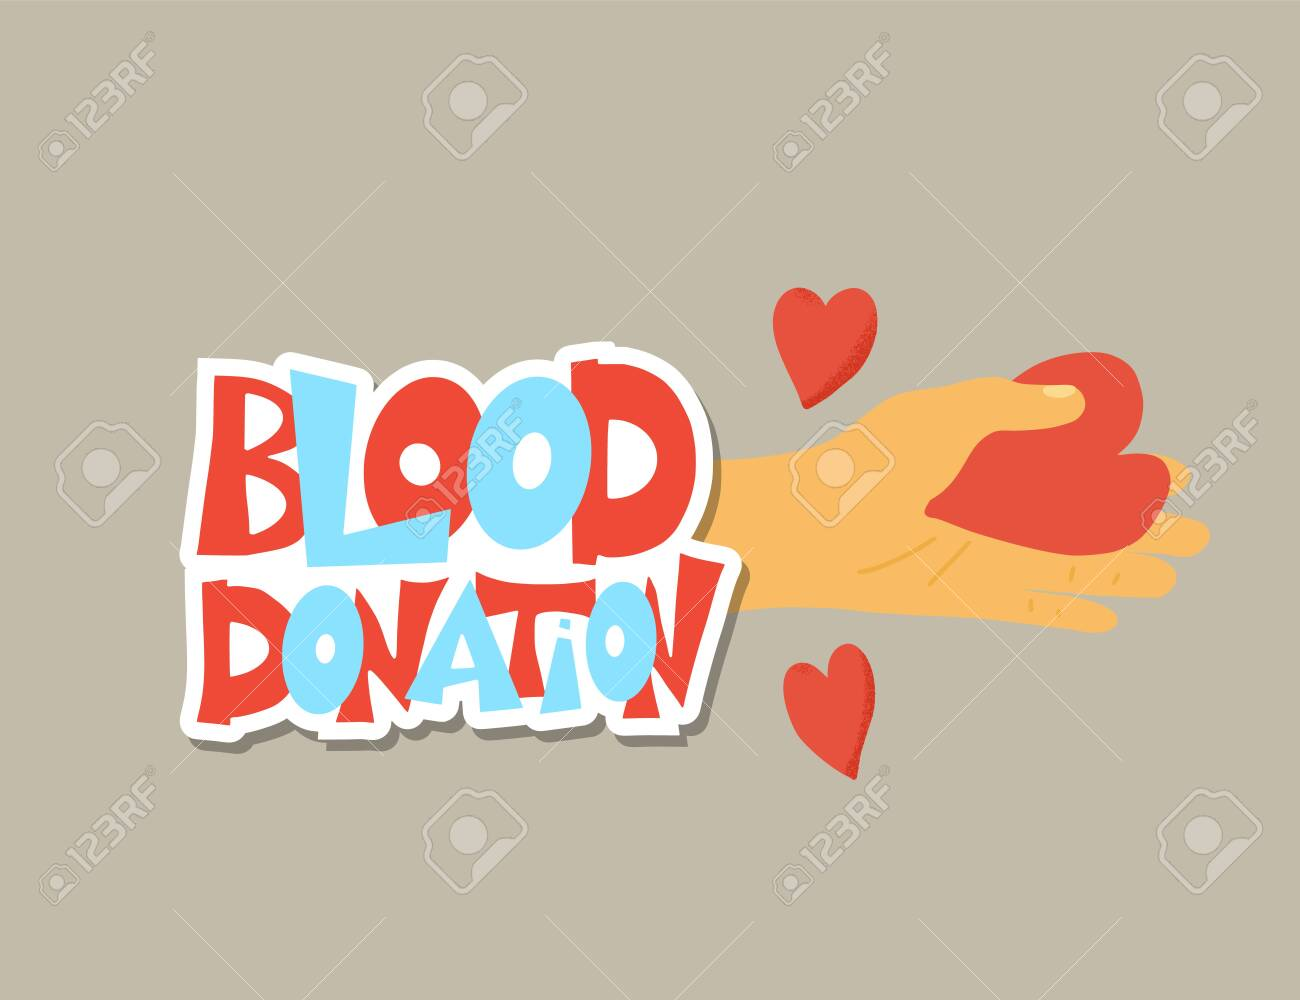 Blood donation concept. Sticker with text and hand with hearts. Vector flat illustration. - 139198452